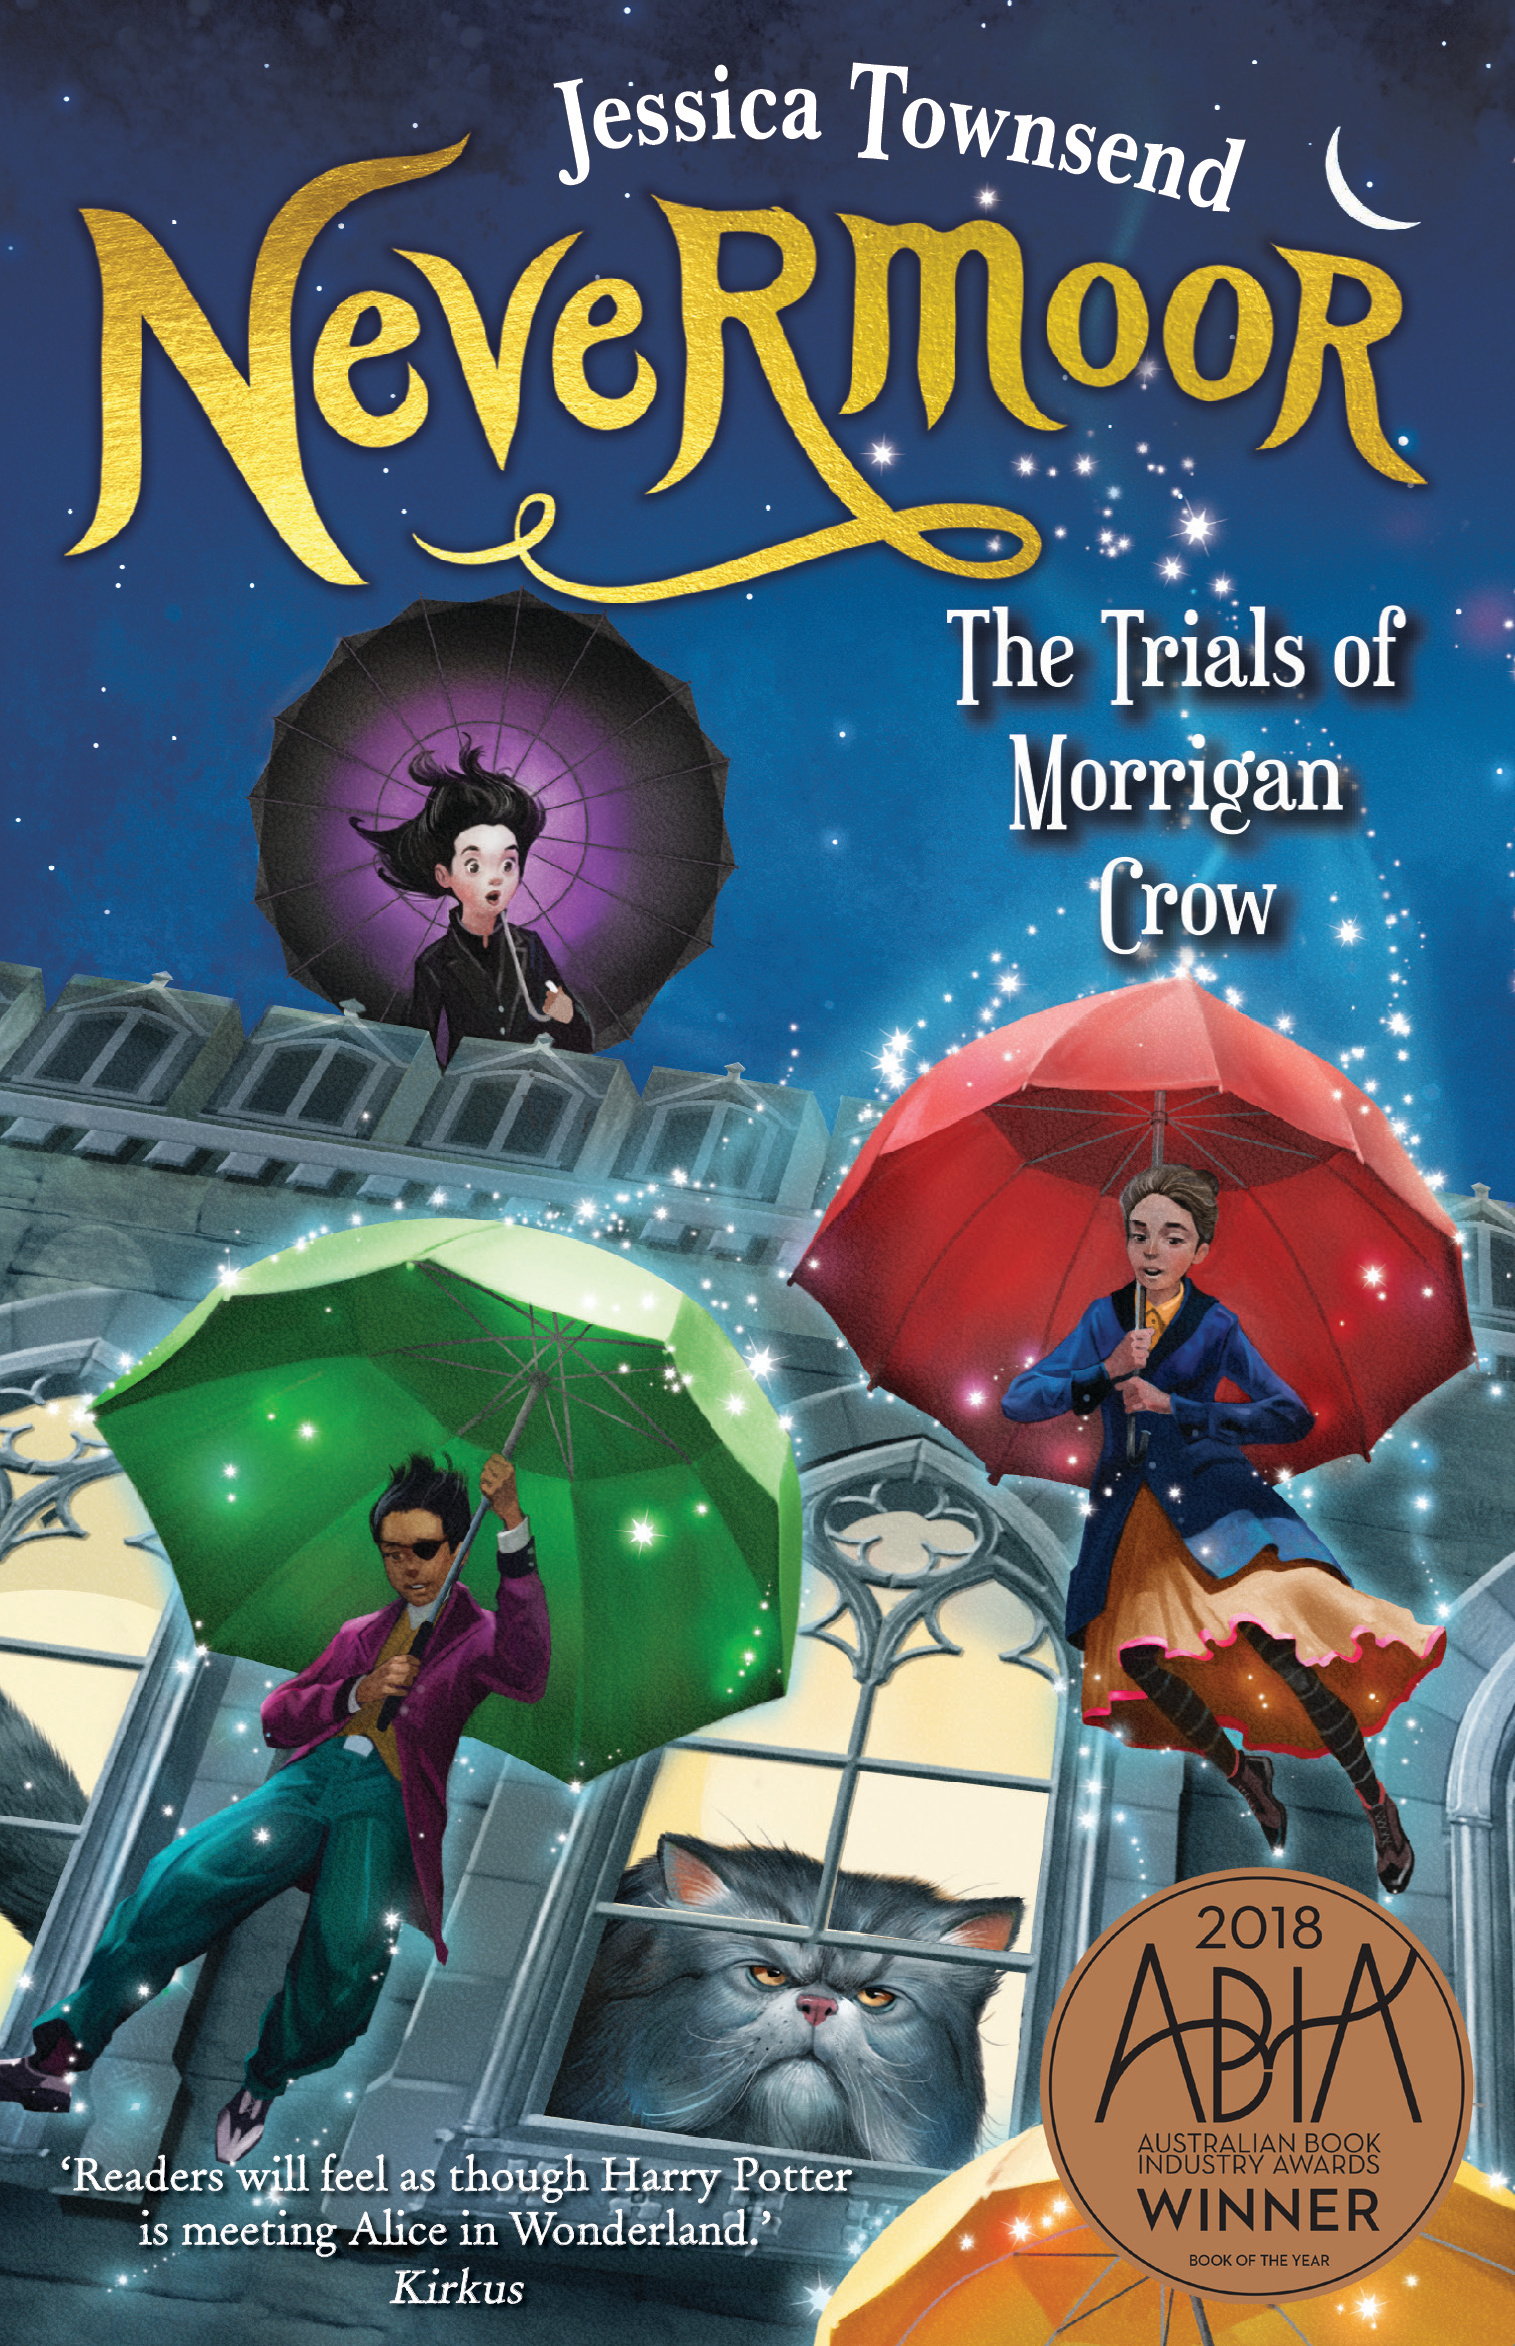 Nevermoor: The Trials of Morrigan Crow by Jessica Townsend, ISBN: 9780734418074